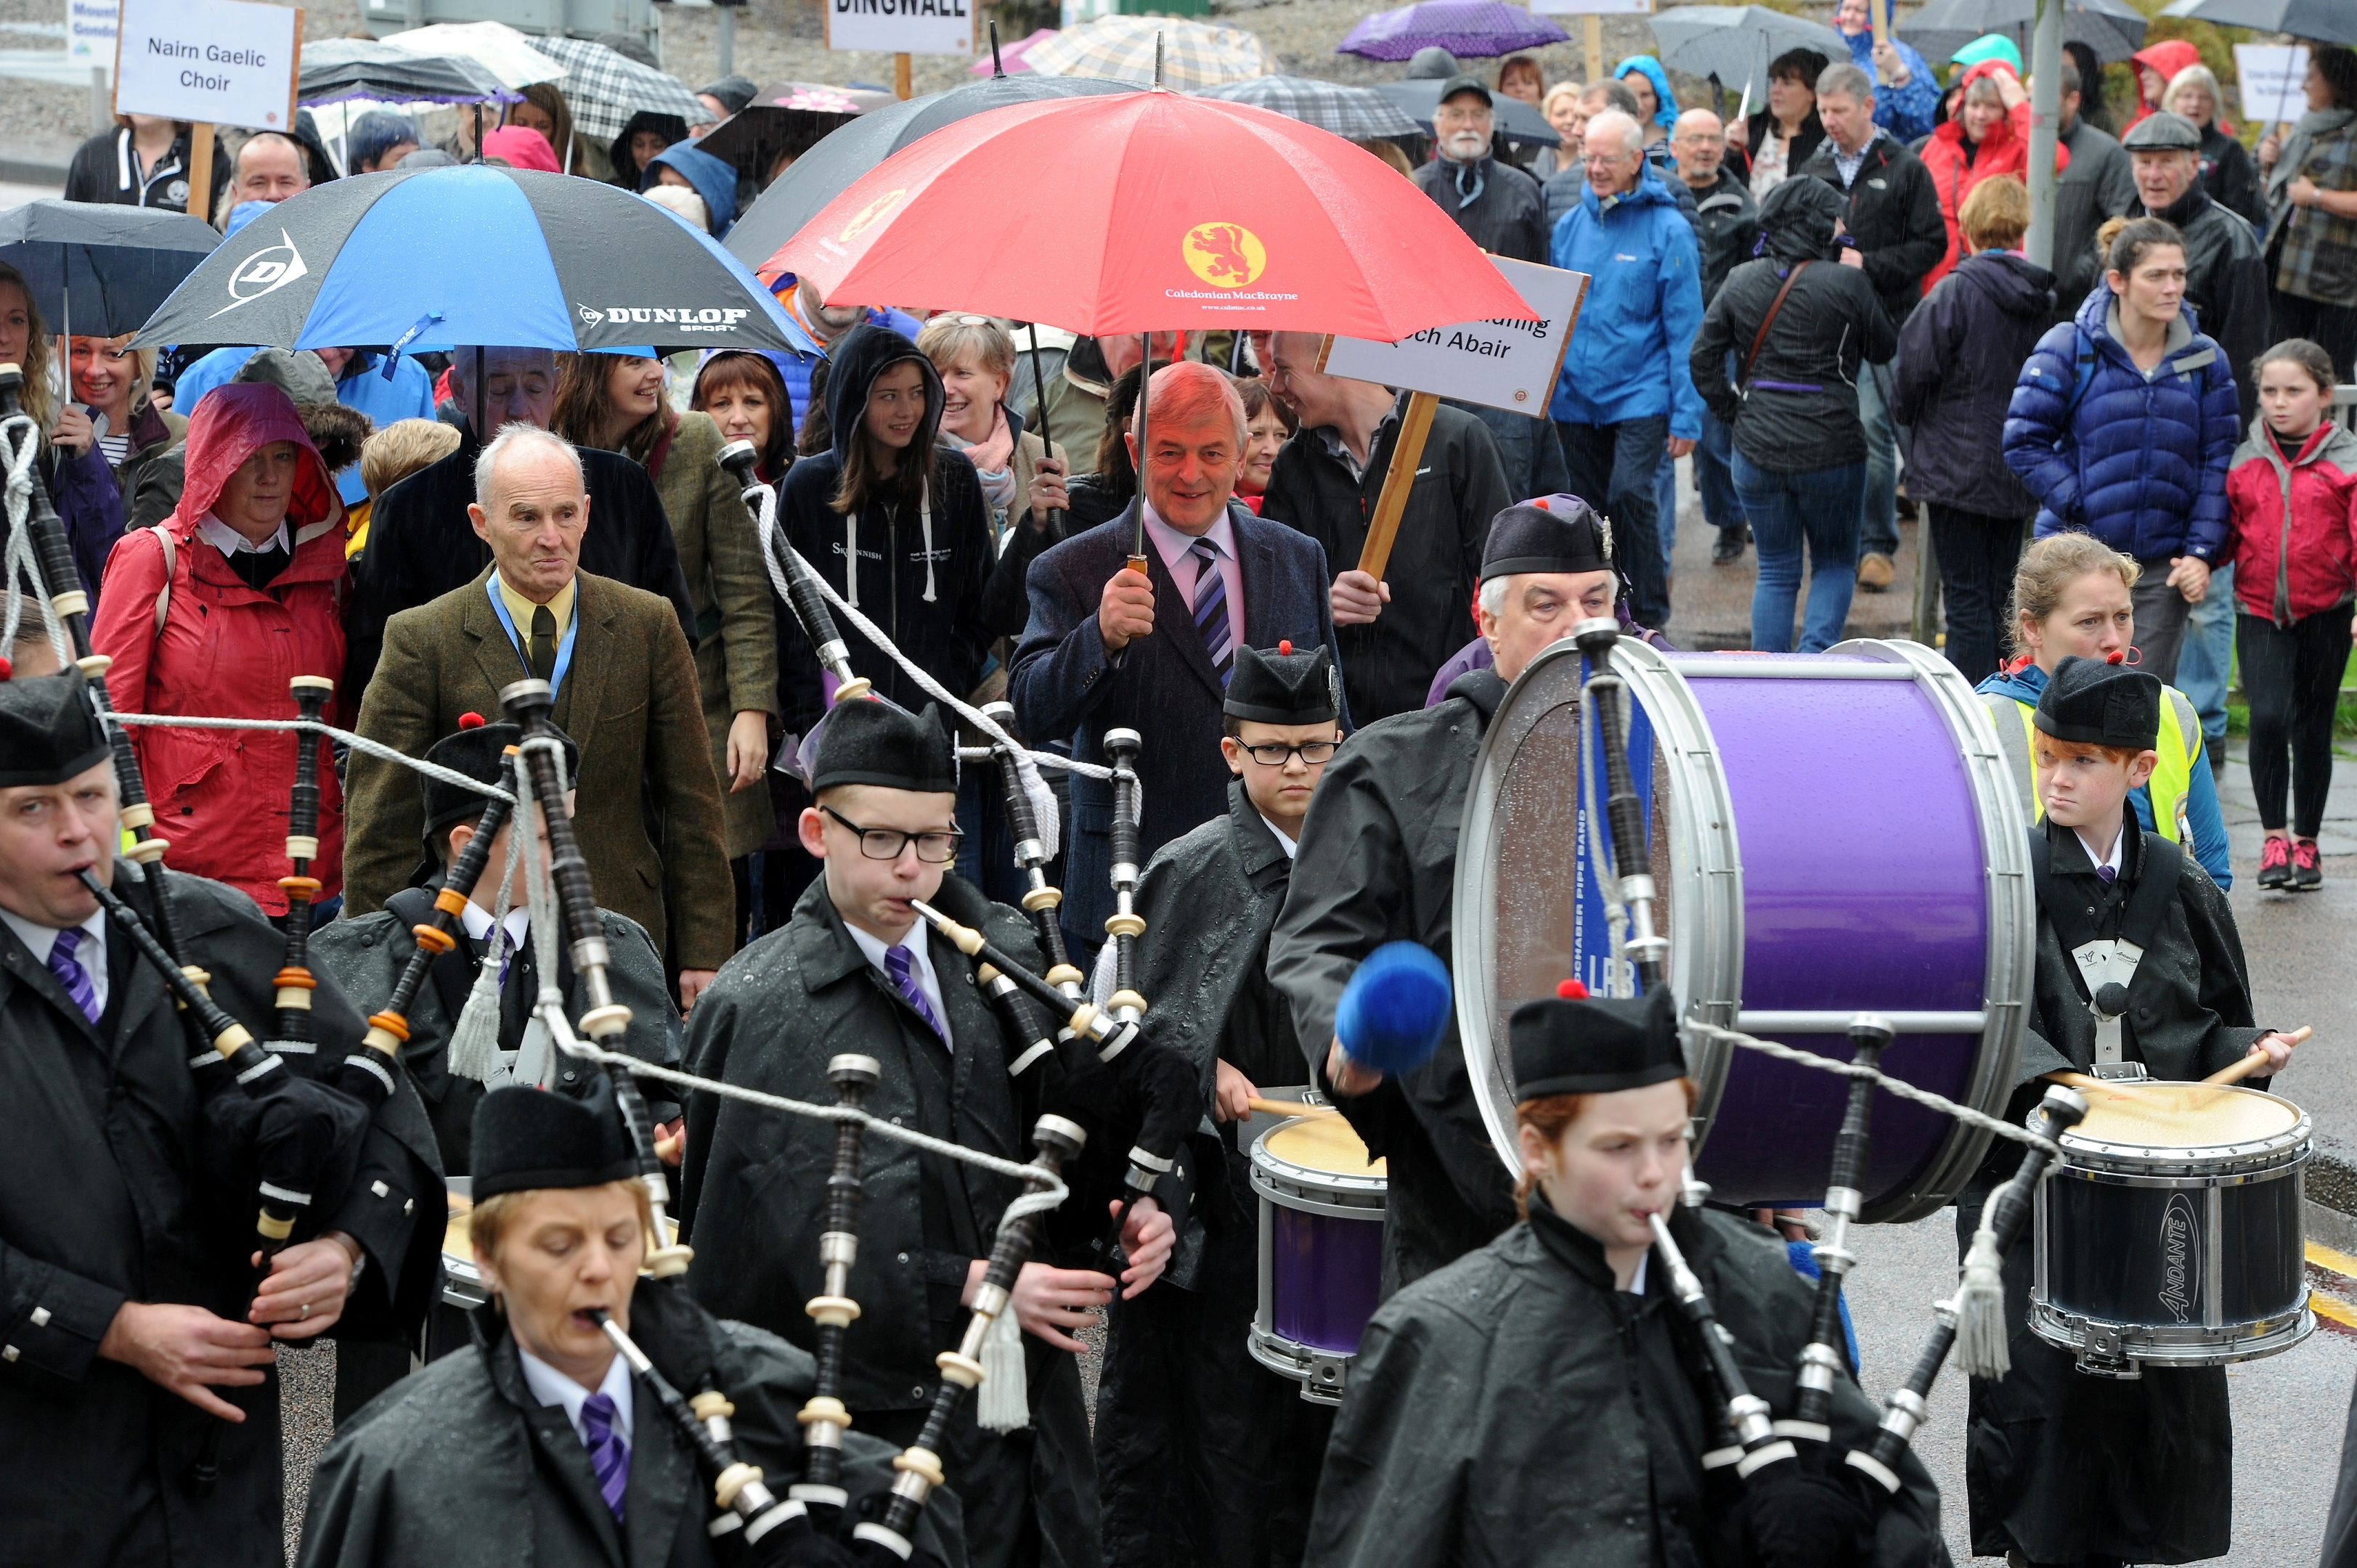 The Massed Choirs are led through Fort William by the Lochaber Pipe Band before performing on The Parade in the centre of the town. Pictures and video by Sandy McCook.